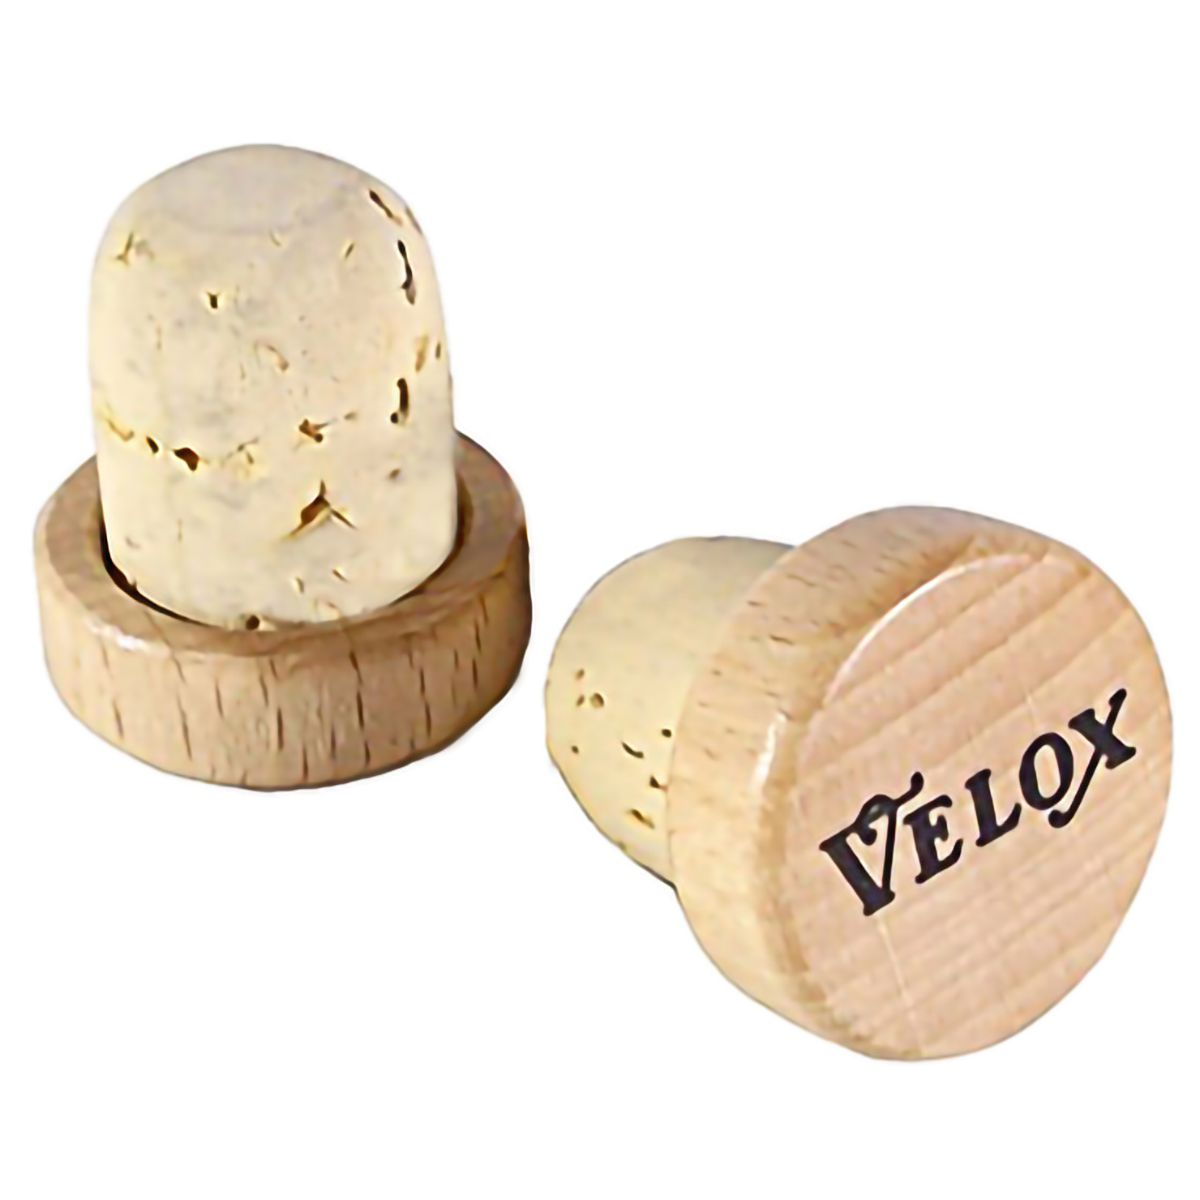 Velox Vintage wooden cork bar end plugs | Misc. Handlebars and Stems